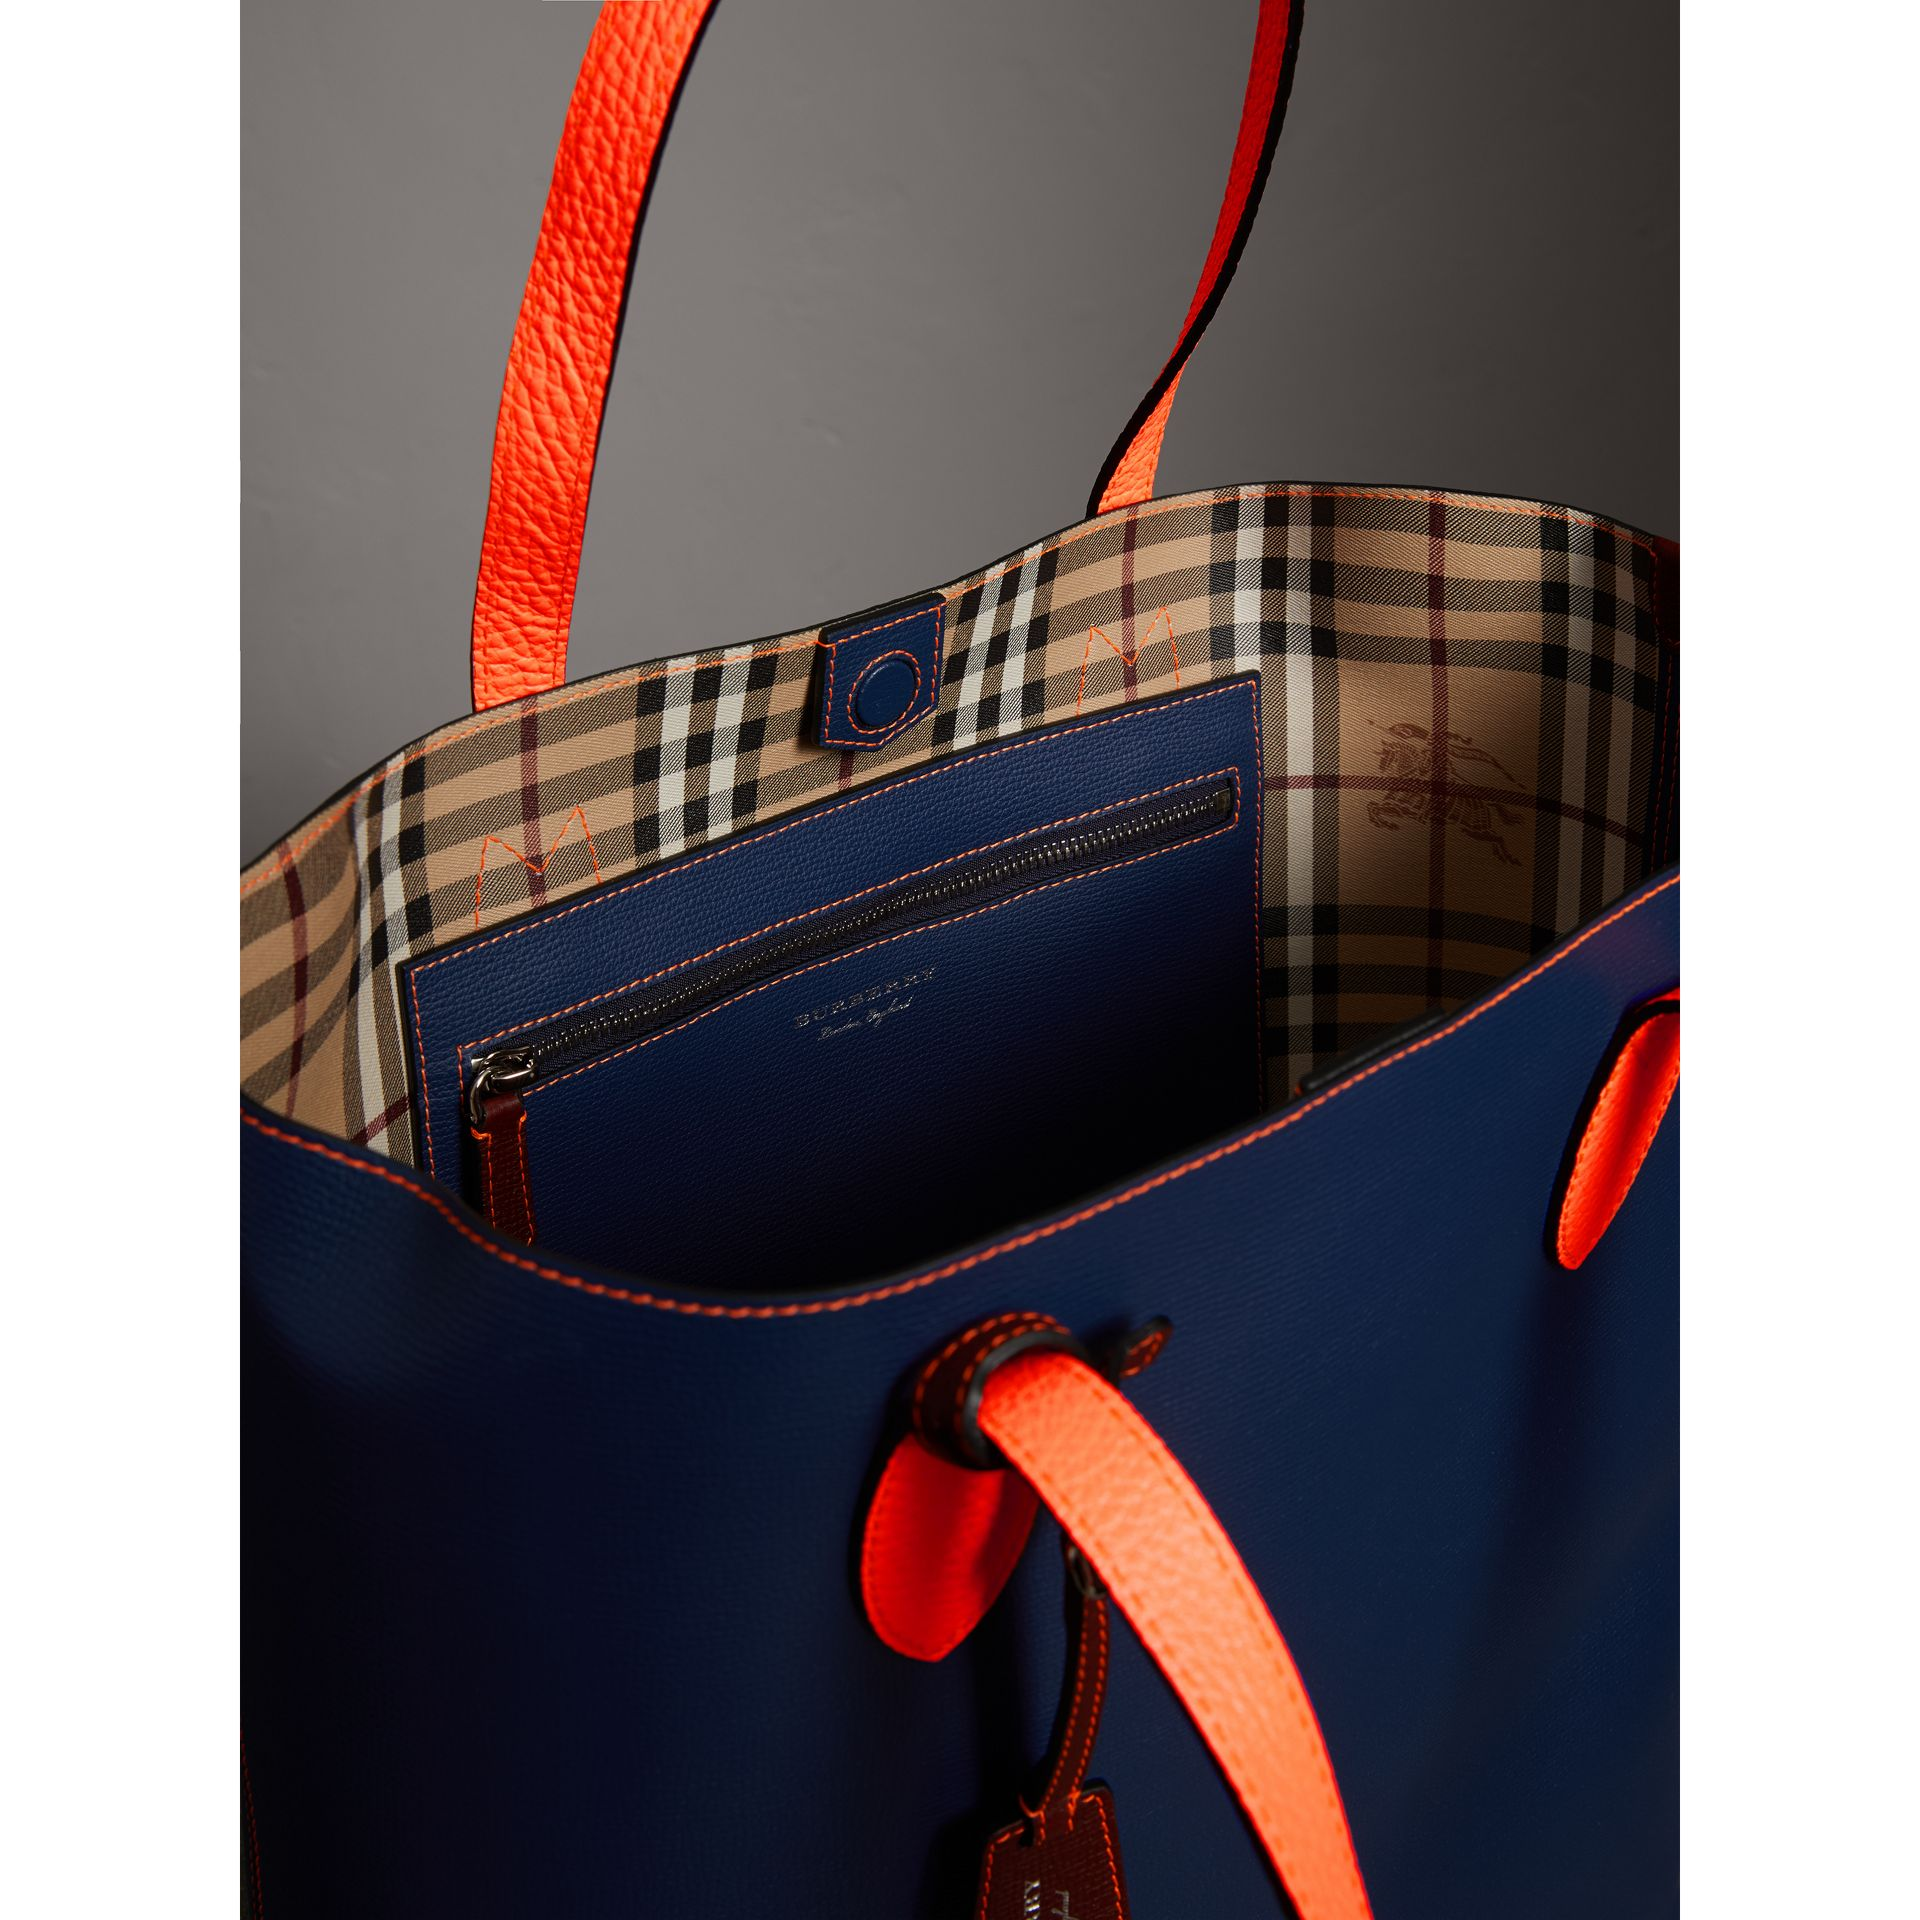 Medium Two-tone Coated Leather Tote in Dark Ultramarine | Burberry - gallery image 6